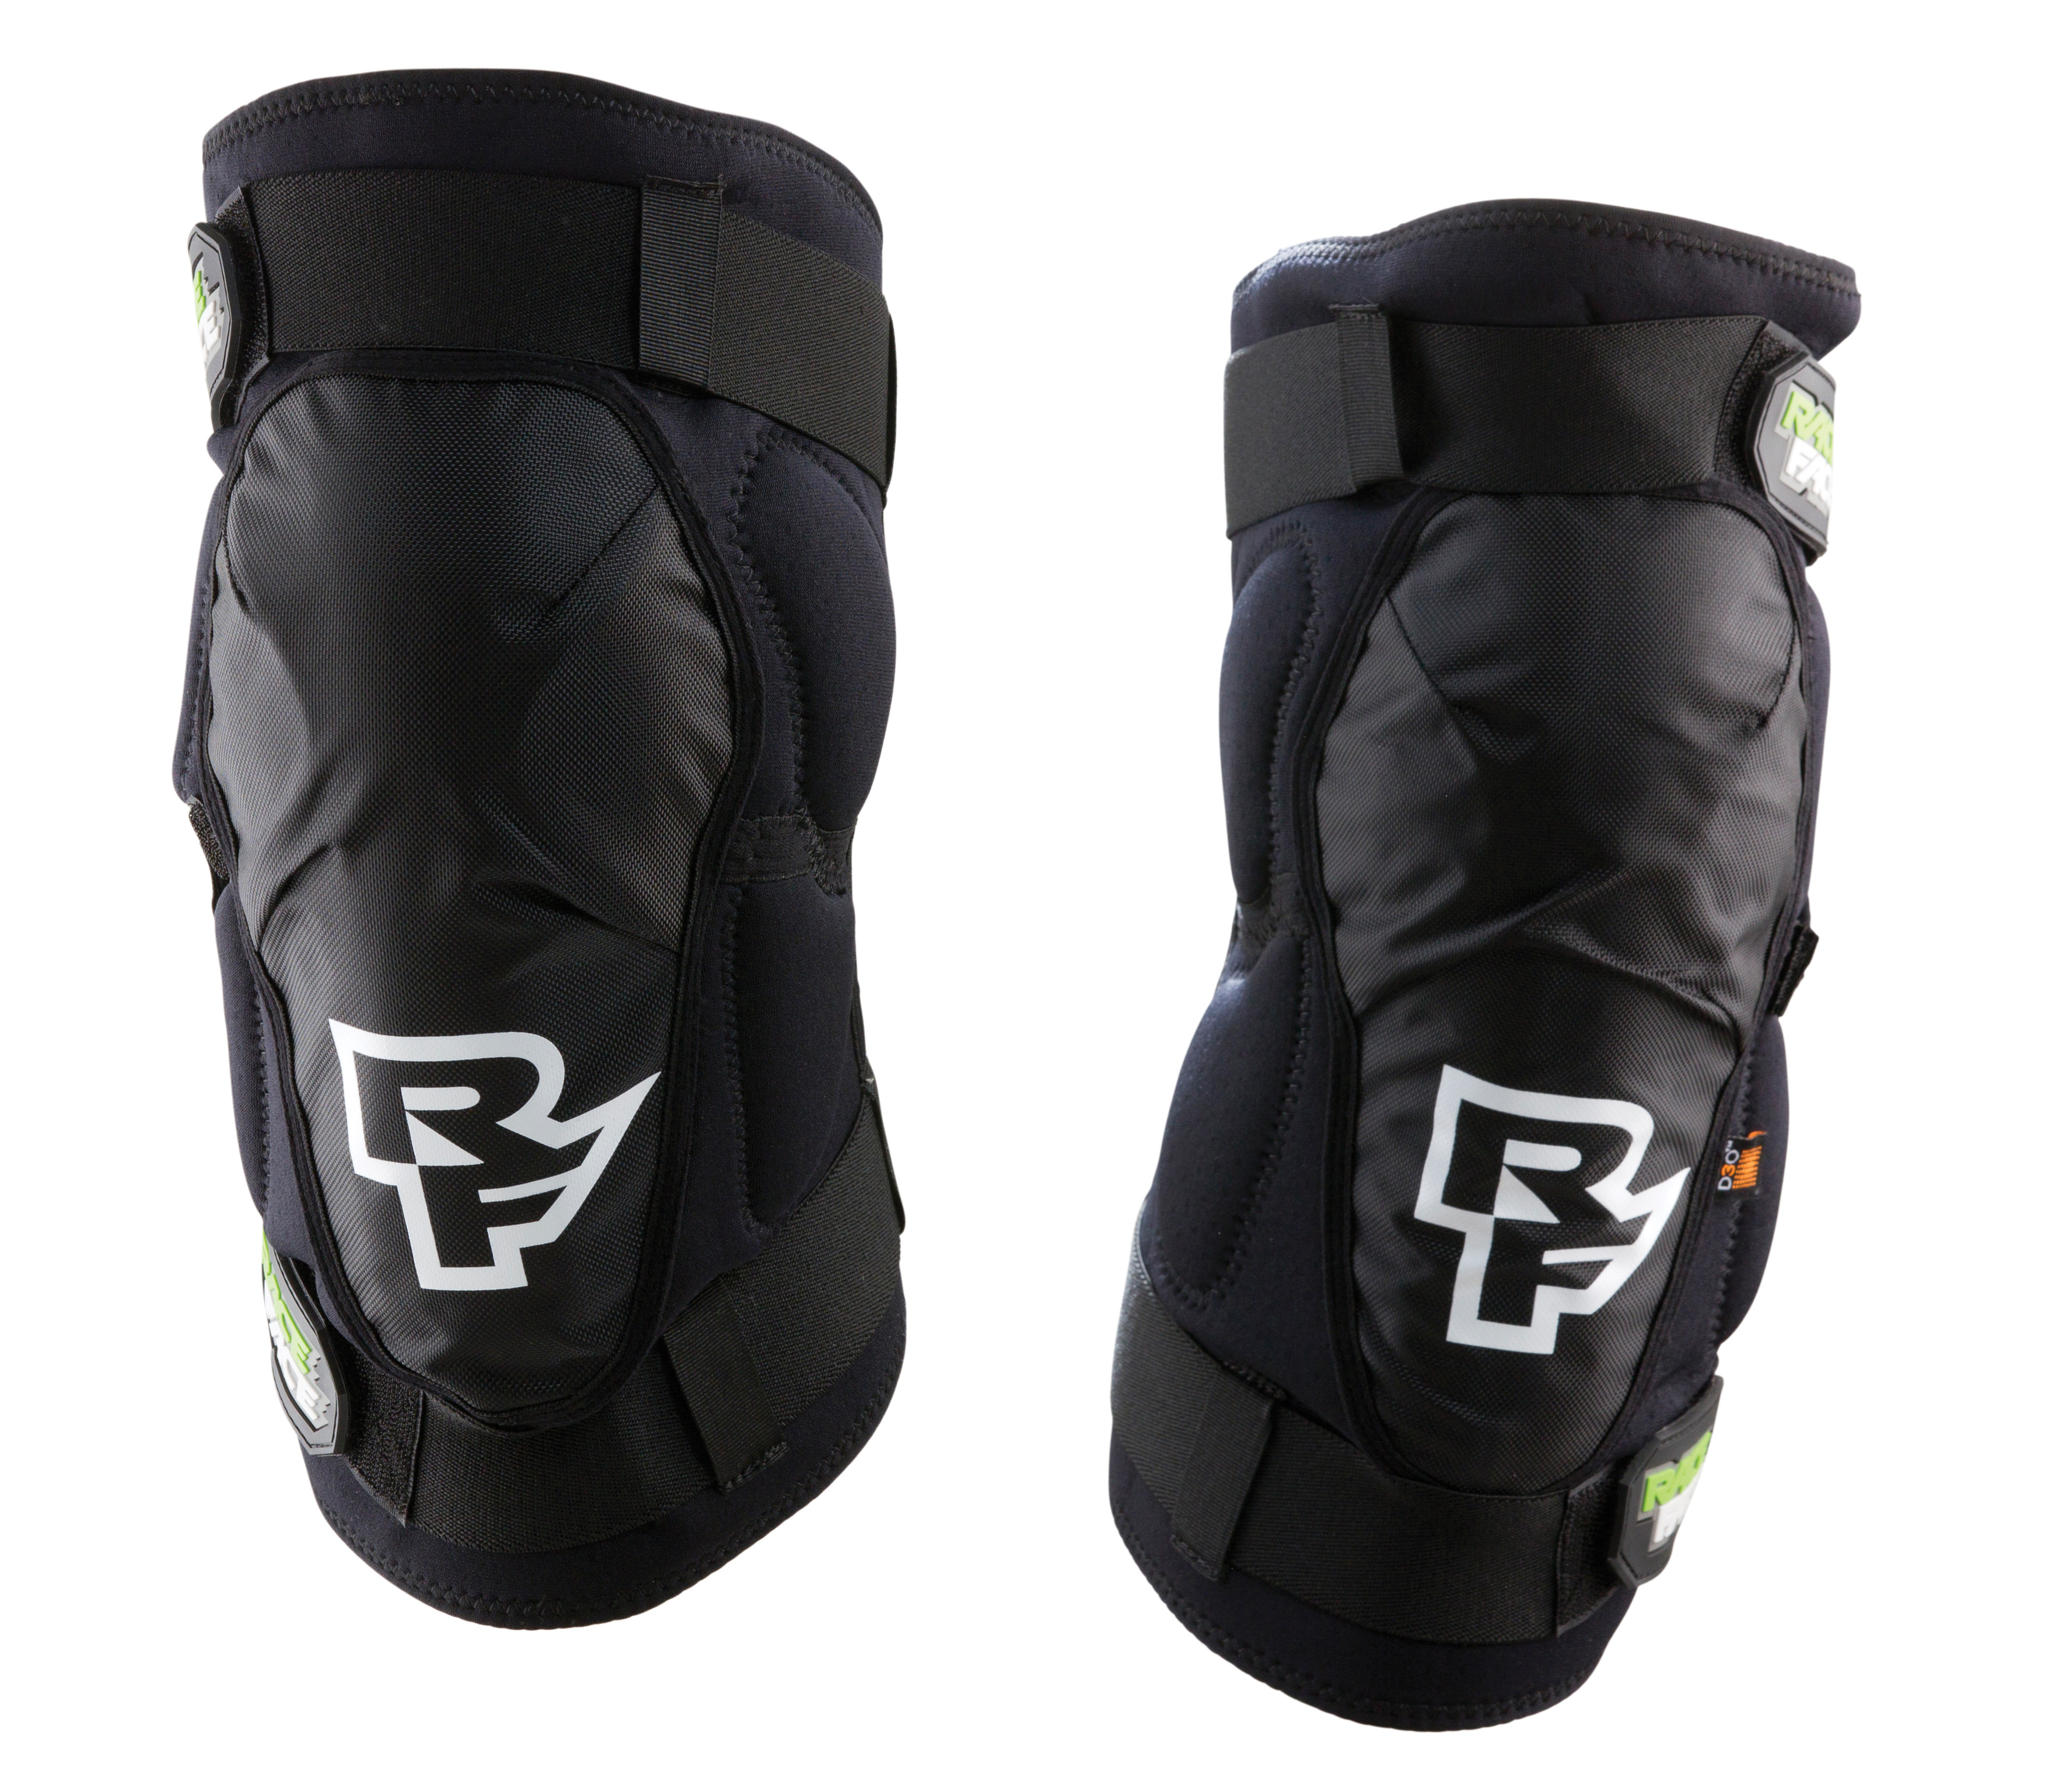 Wiggle | Race Face Ambush Knee D30 Pad | Knee Pads | Amour